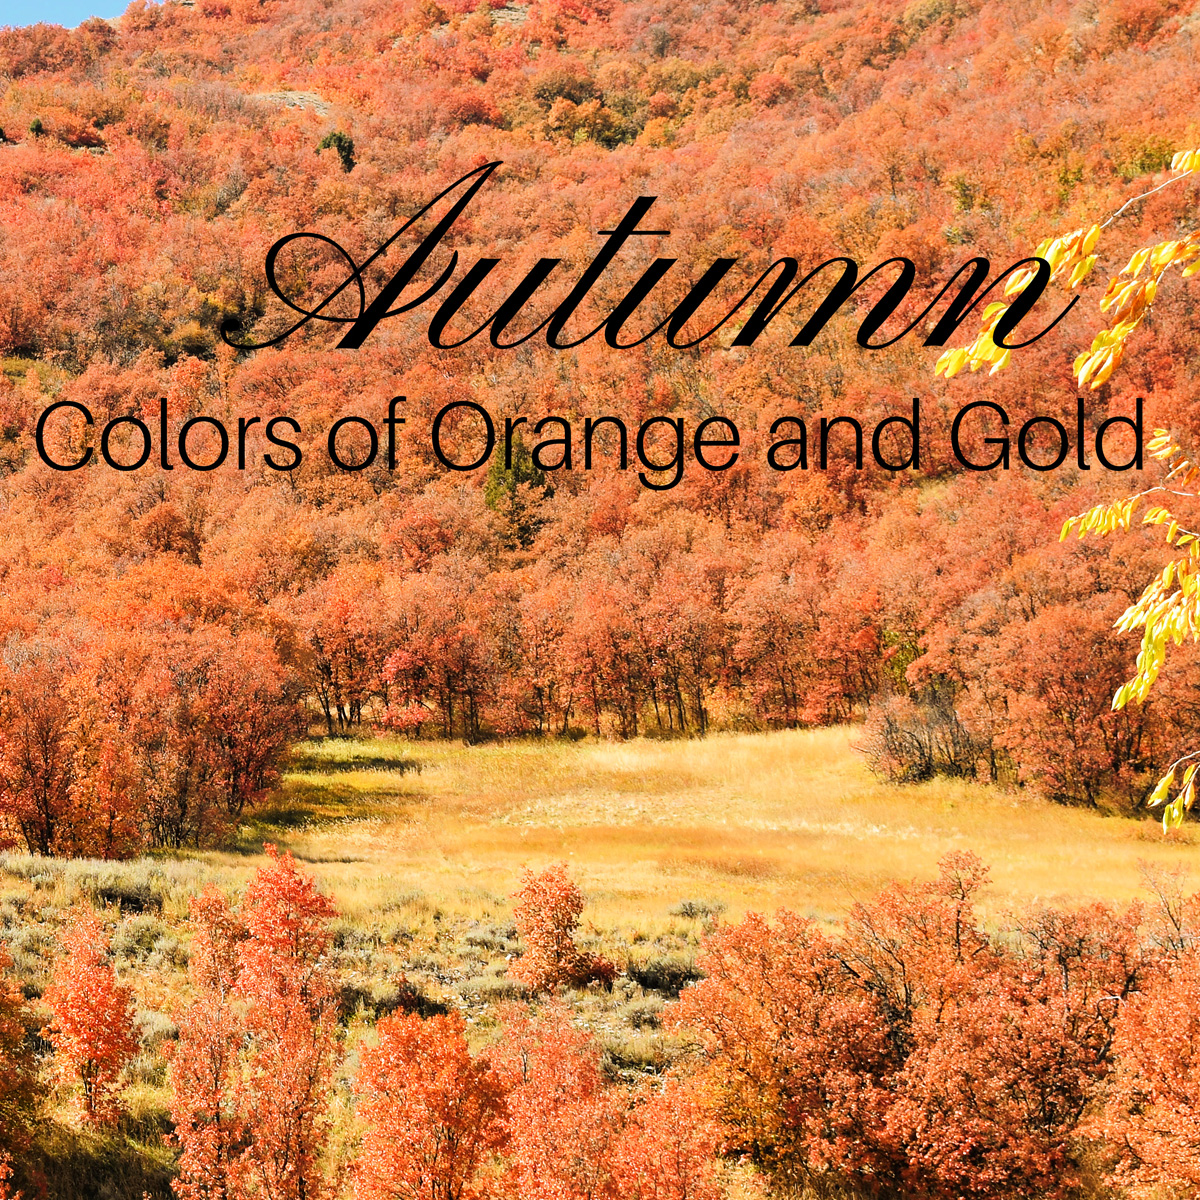 Autumn Colors of Orange and Gold